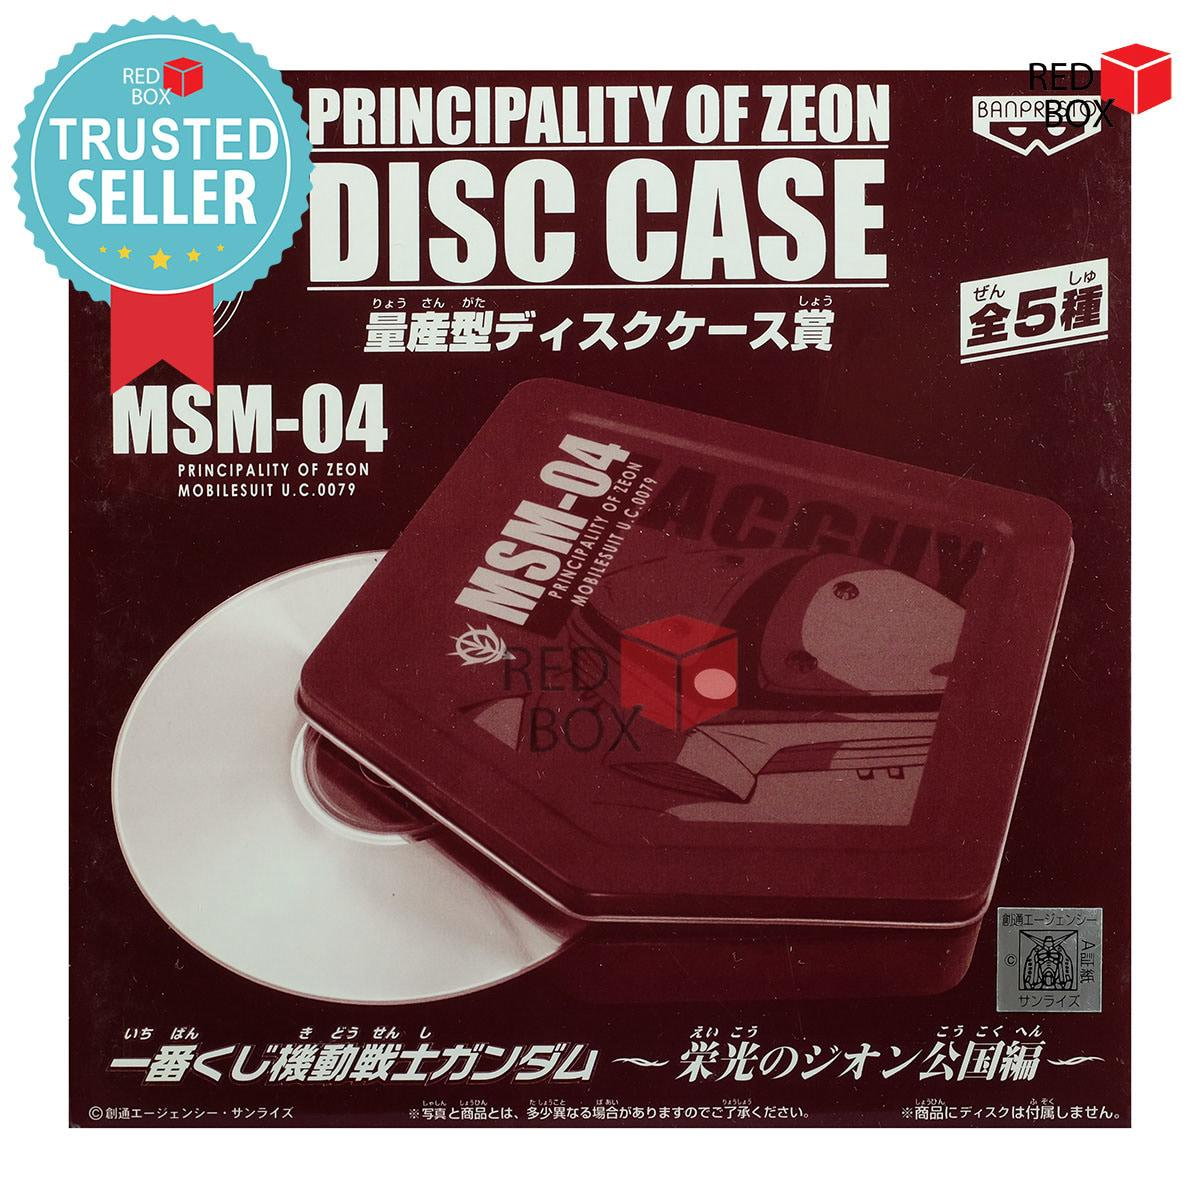 Termurah Mainan Koleksi Banpresto Acguy Disc Case - Ichiban Kuji Principality of Zeon Anime Cartoon